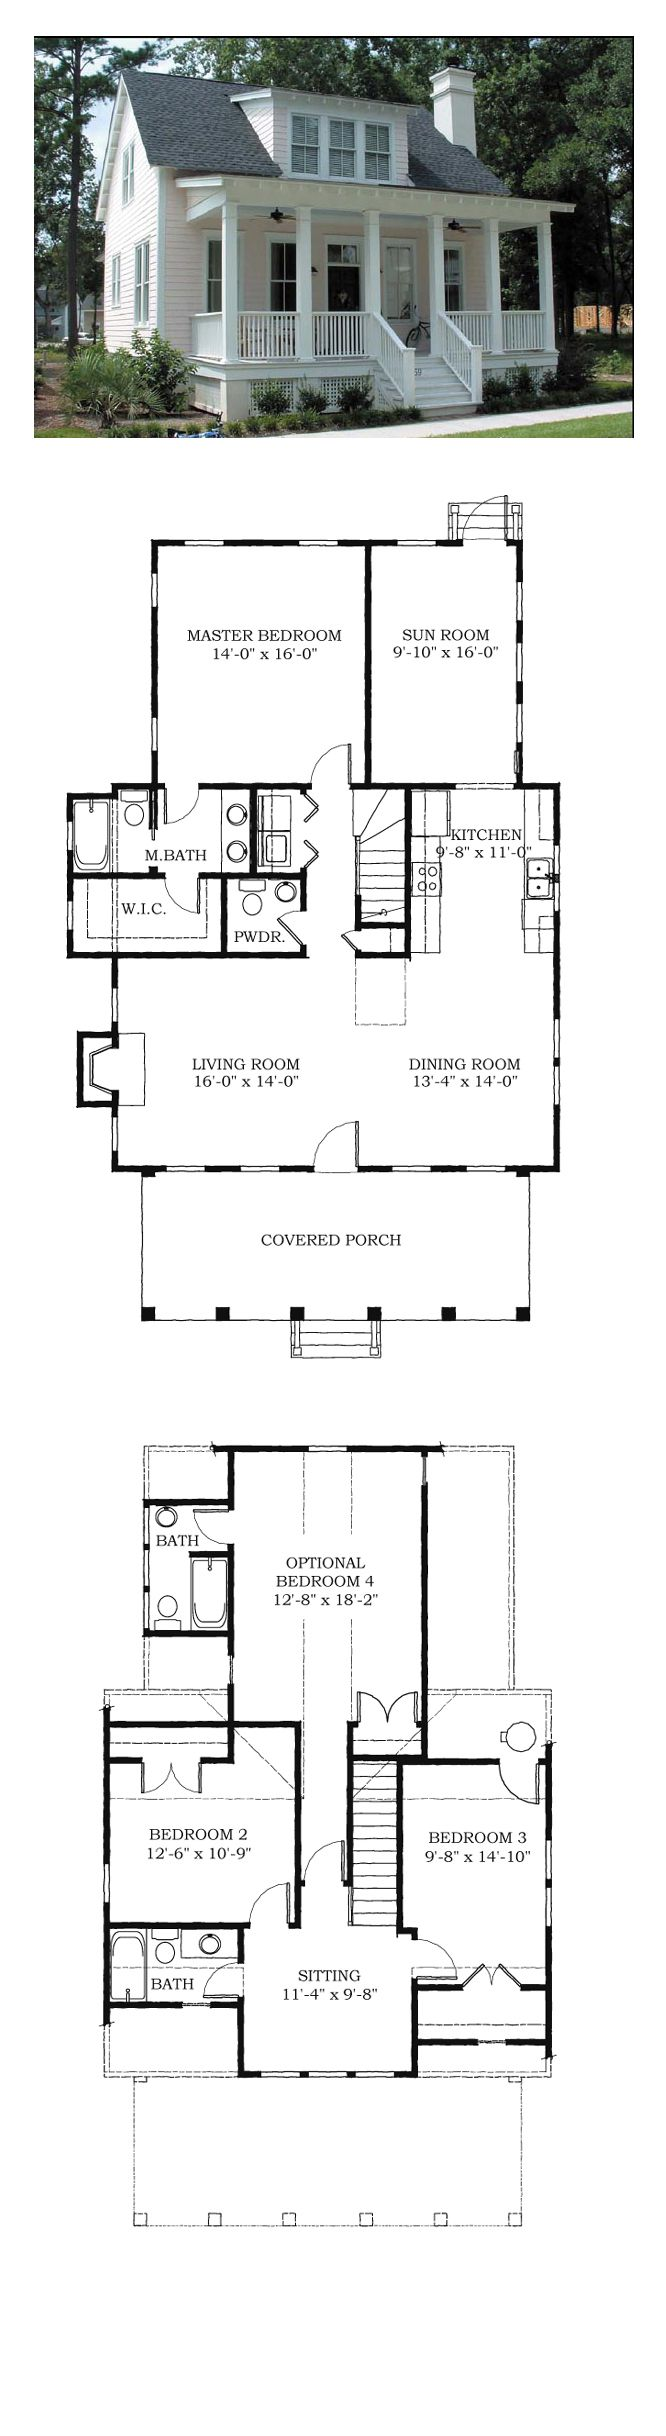 Best 25 Tiny house plans ideas on Pinterest Small home plans